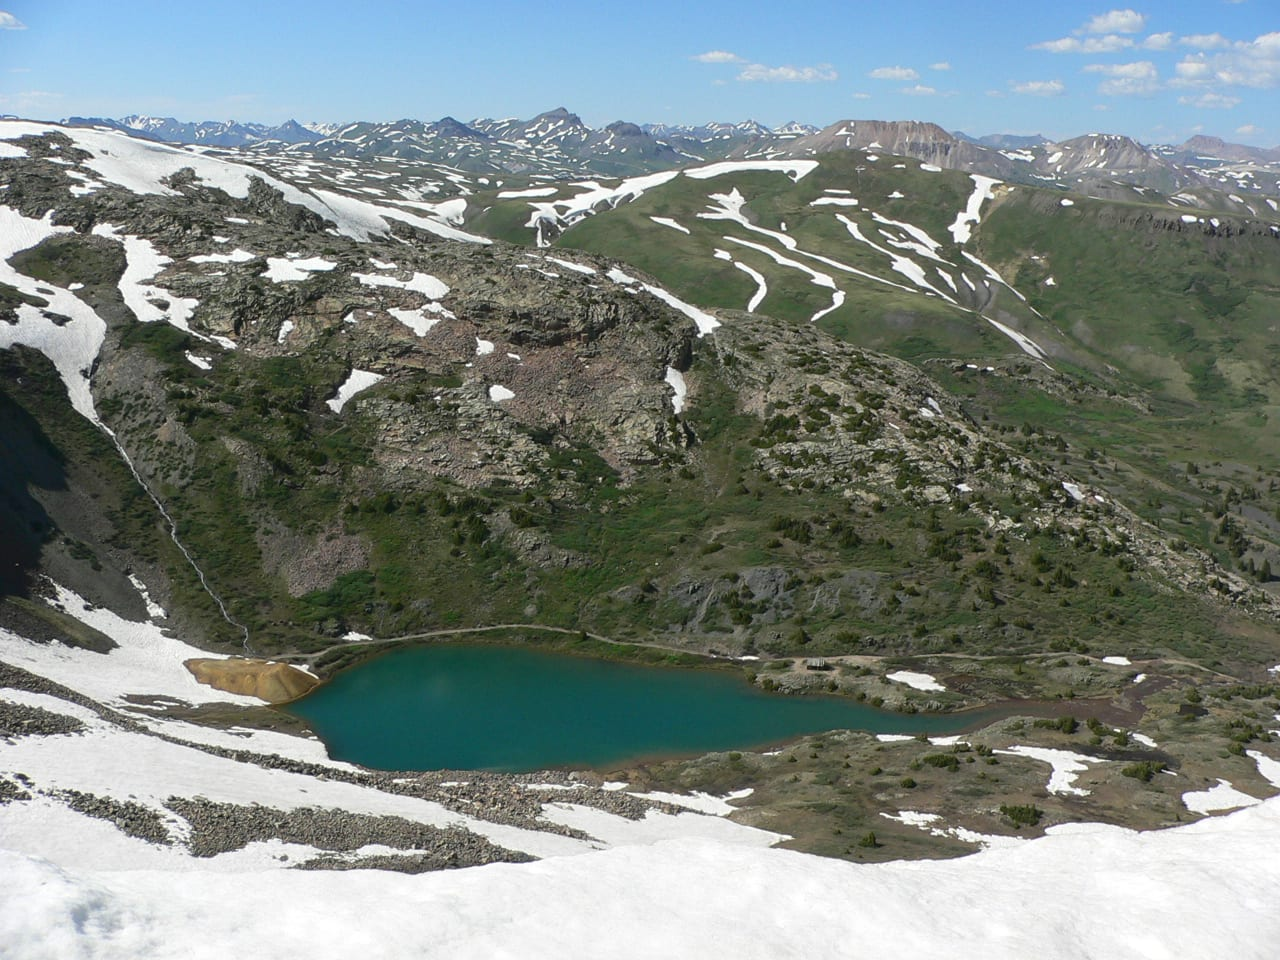 Kite Lake Alma CO Aerial View in June